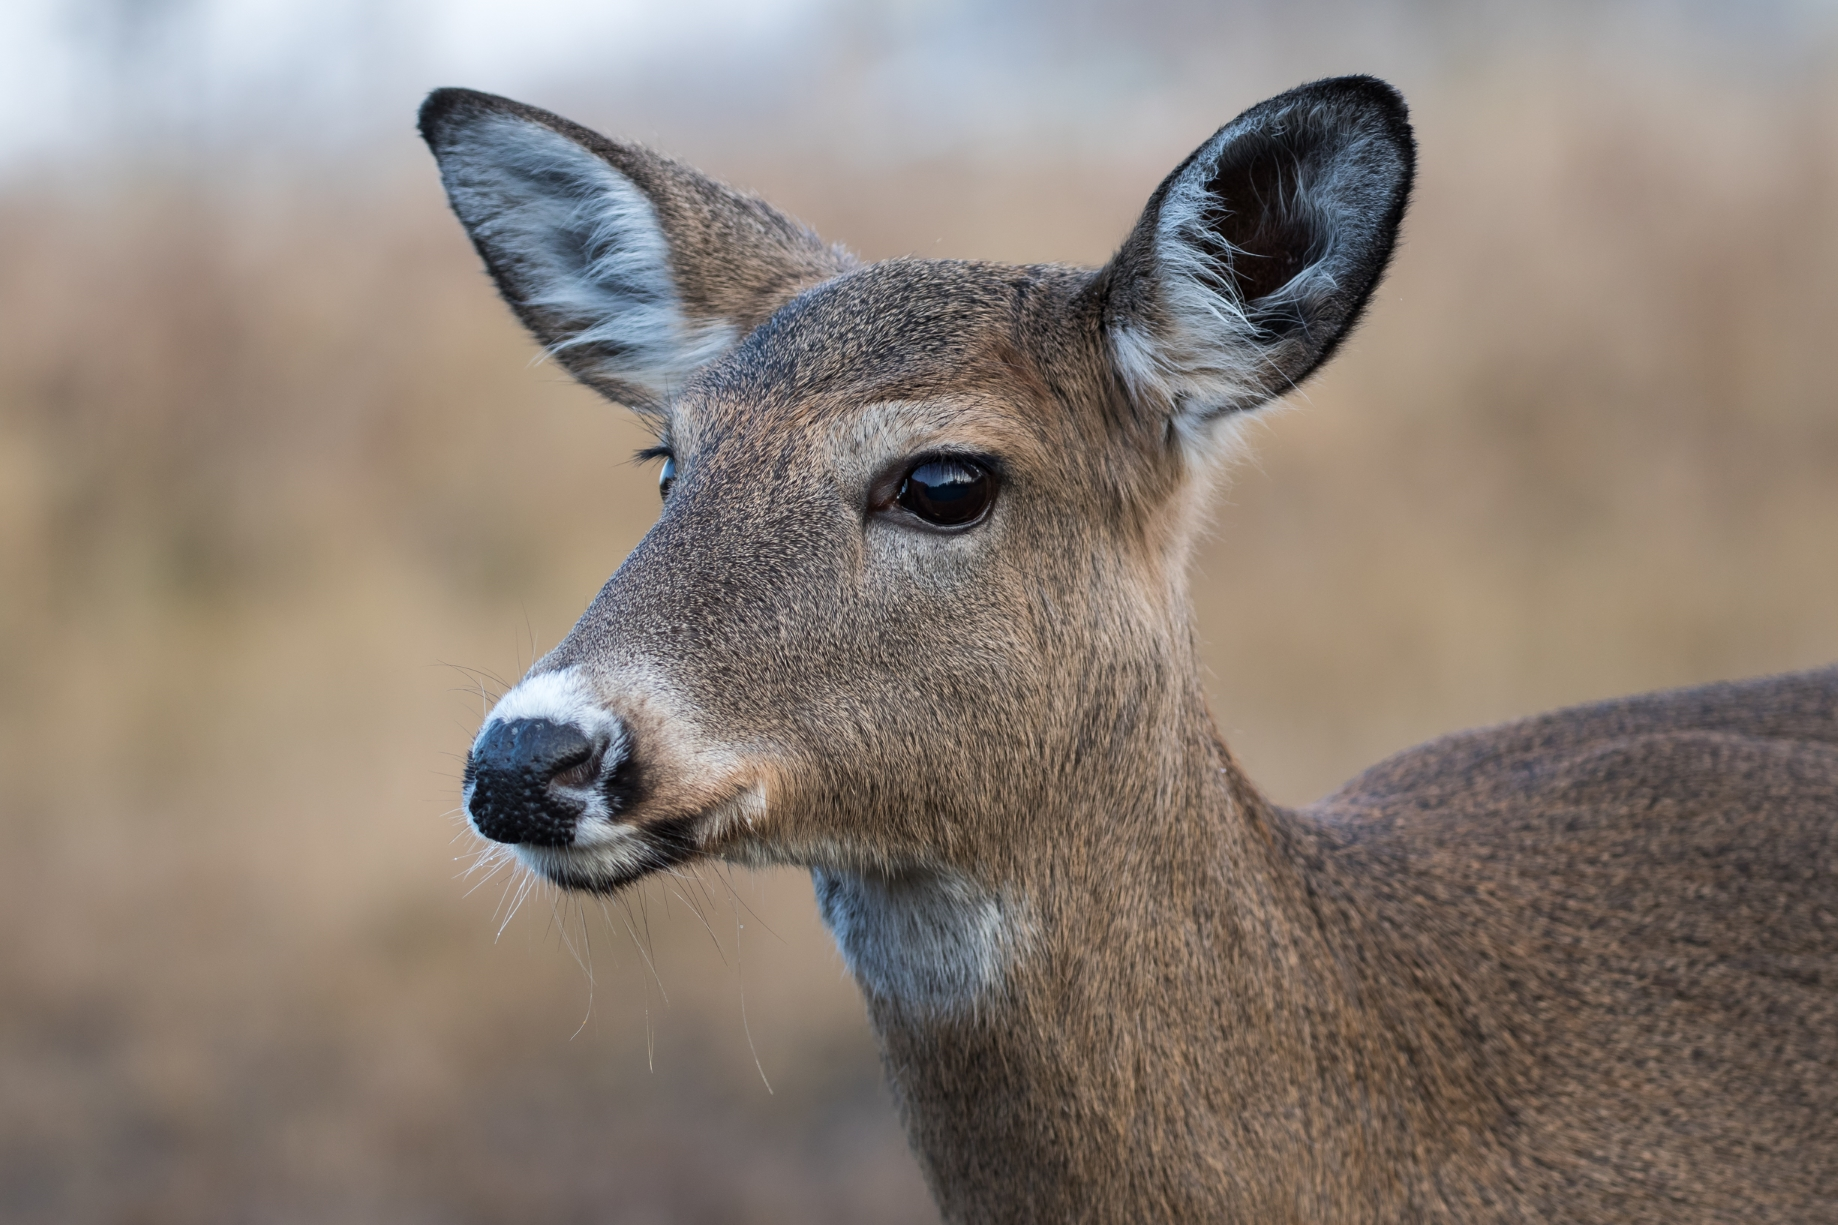 White-tailed Deer Female, Odocoileus Virginianus, closeup